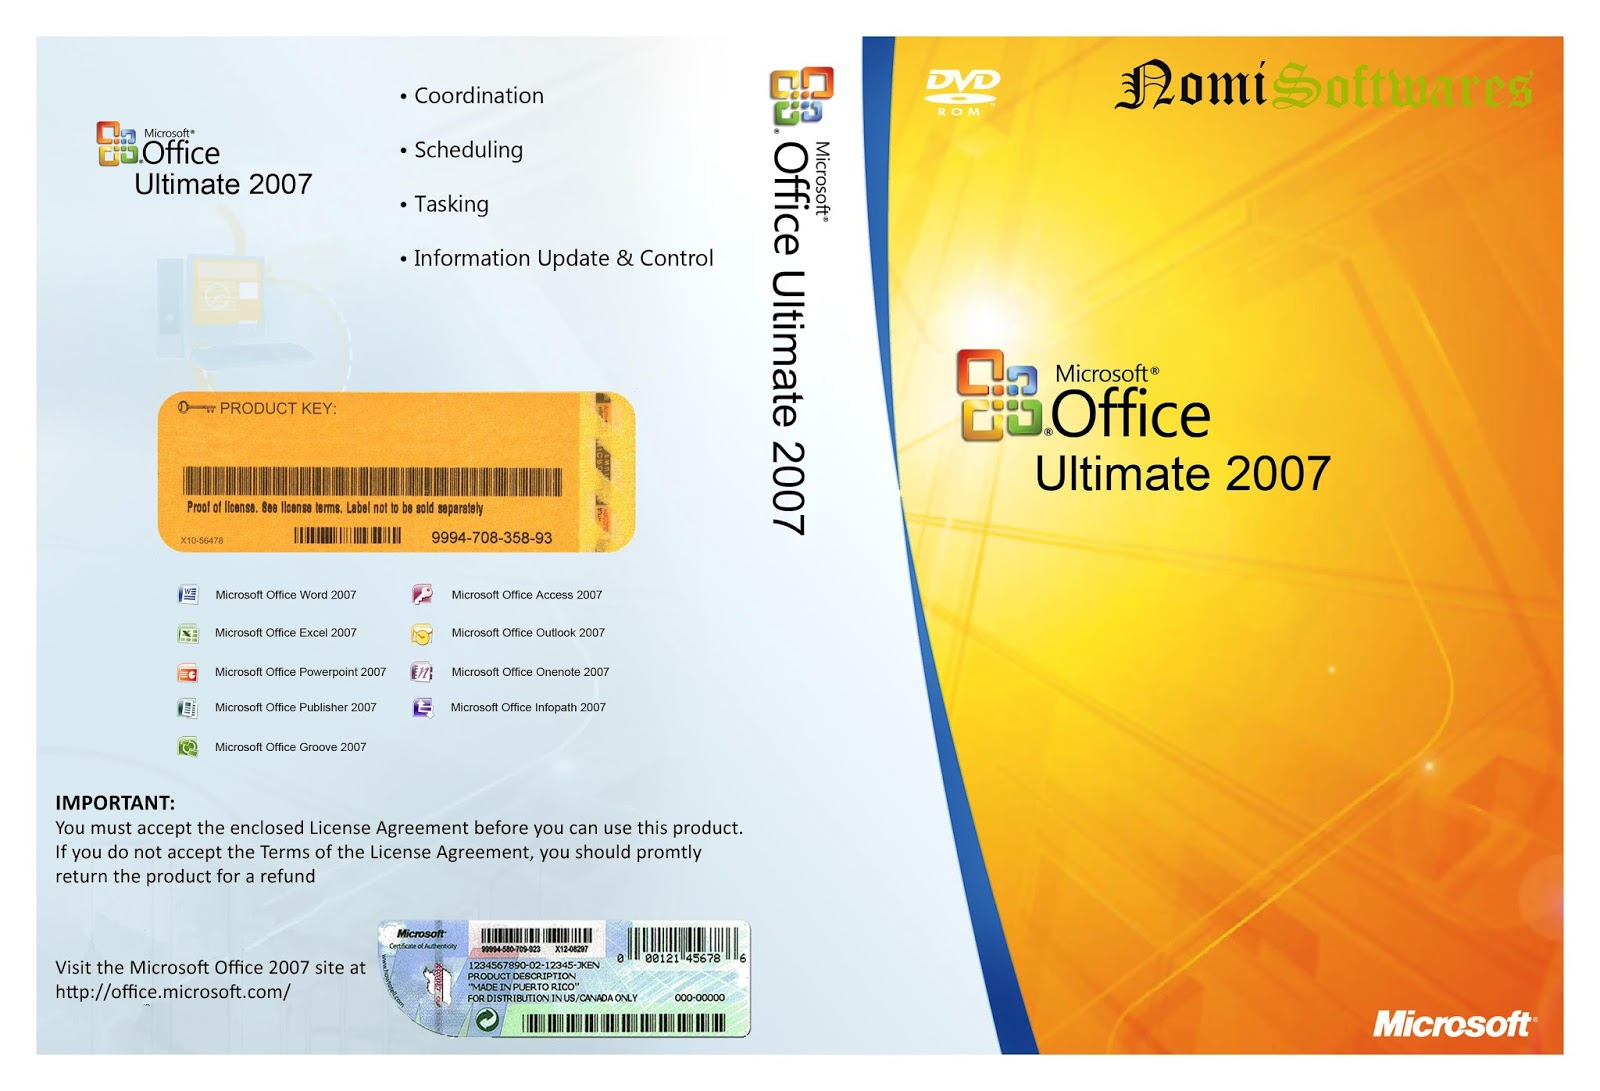 Microsoft Office 2007 Ultimate buy key